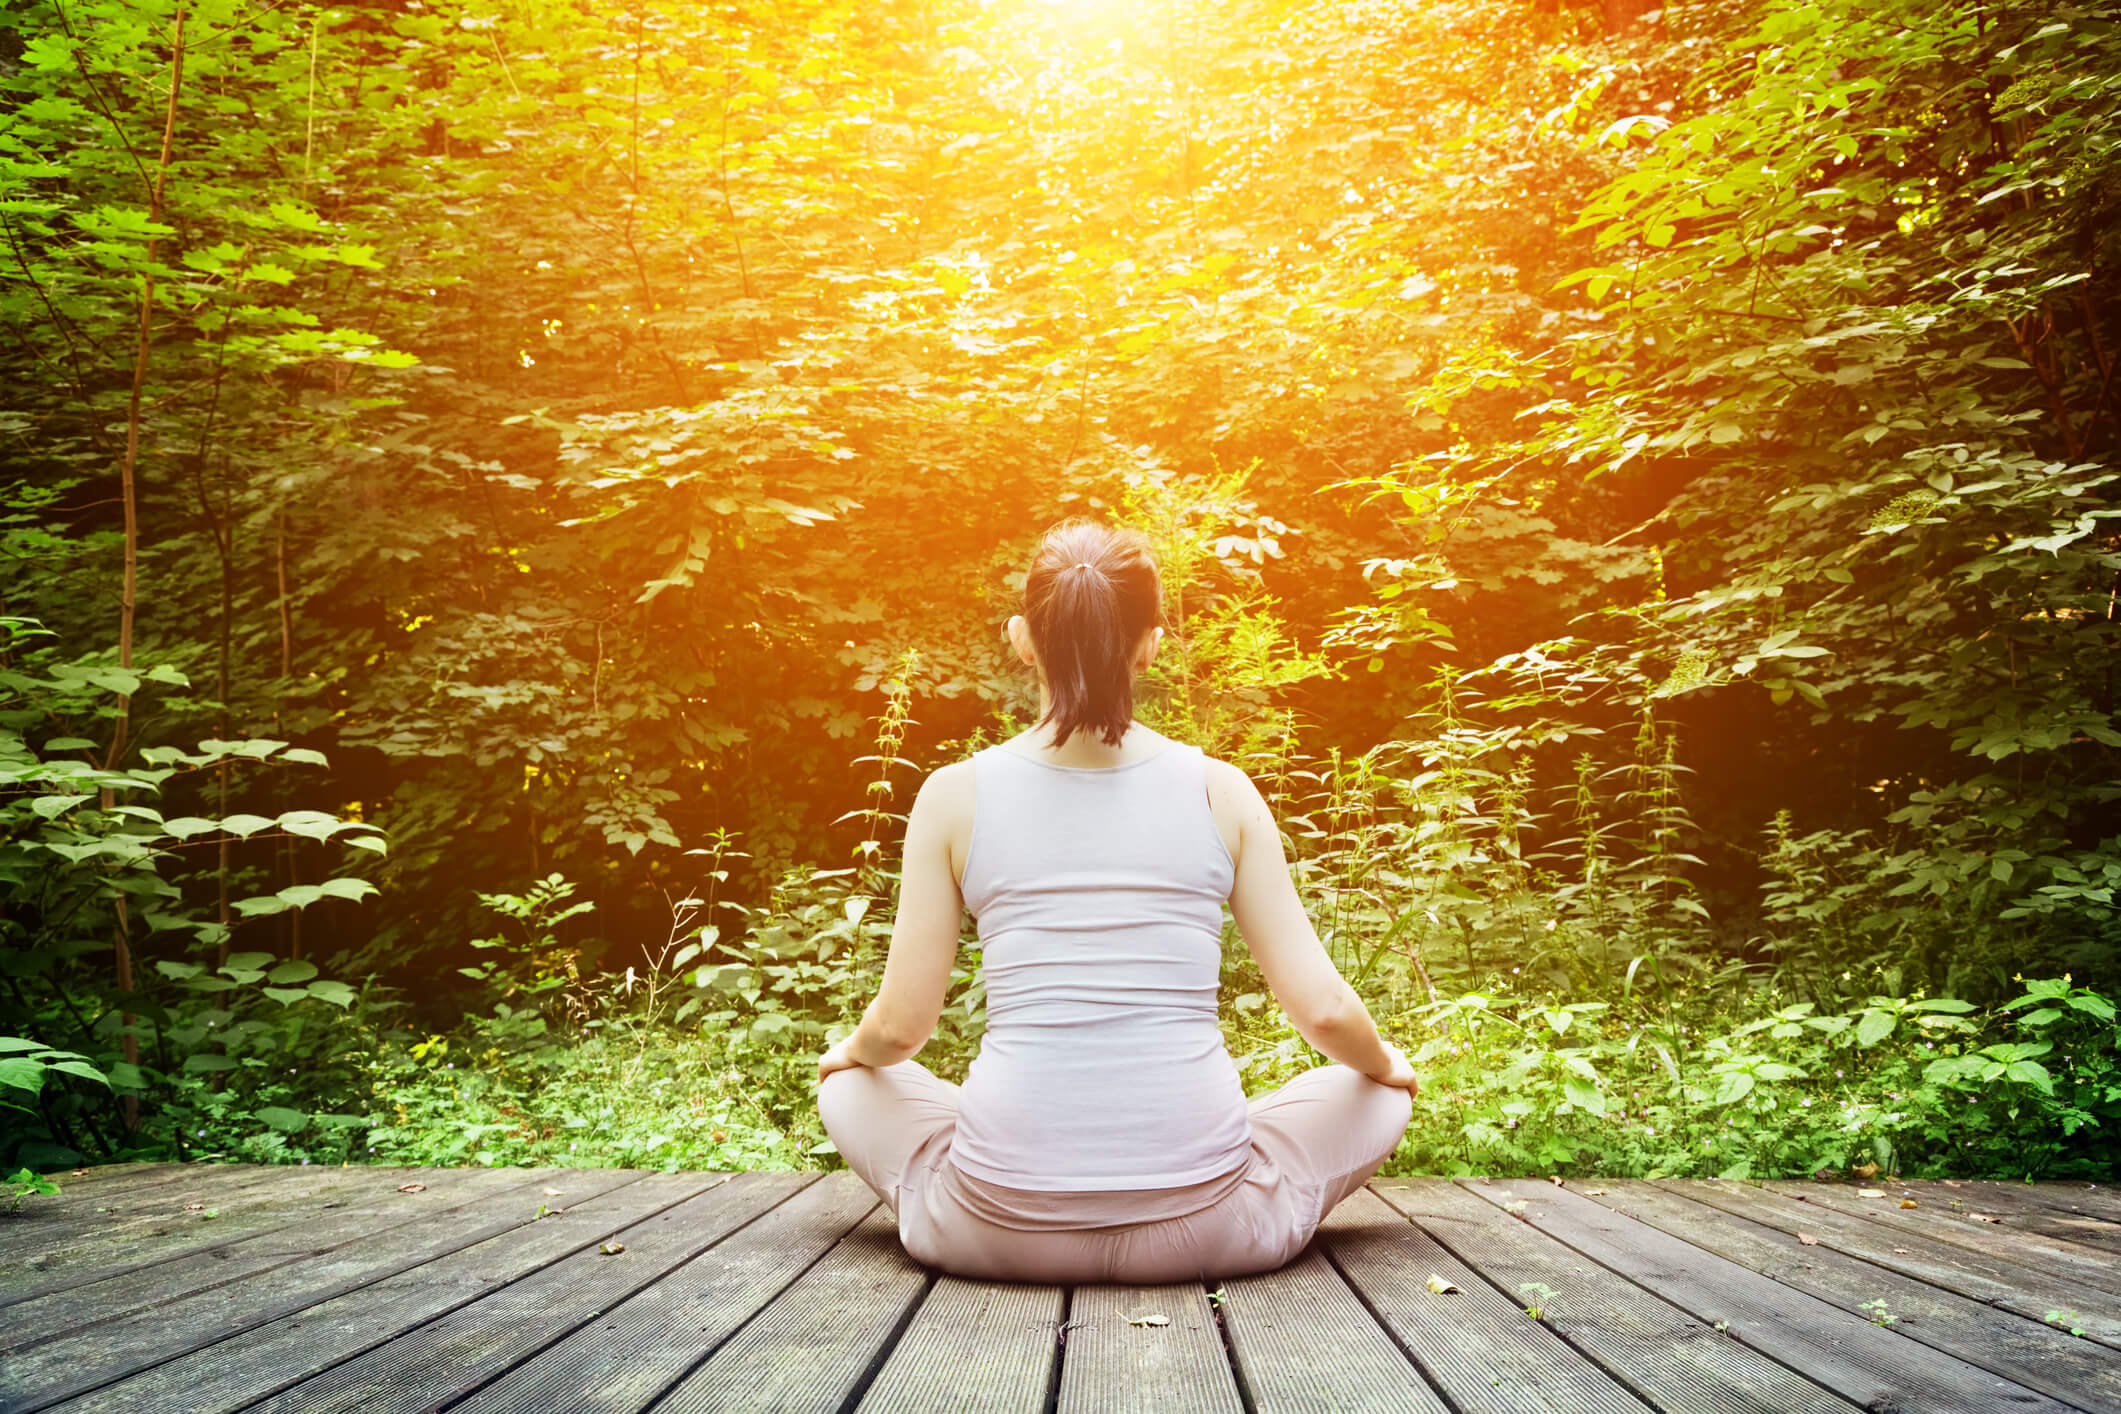 What to do when you can't focus during meditation